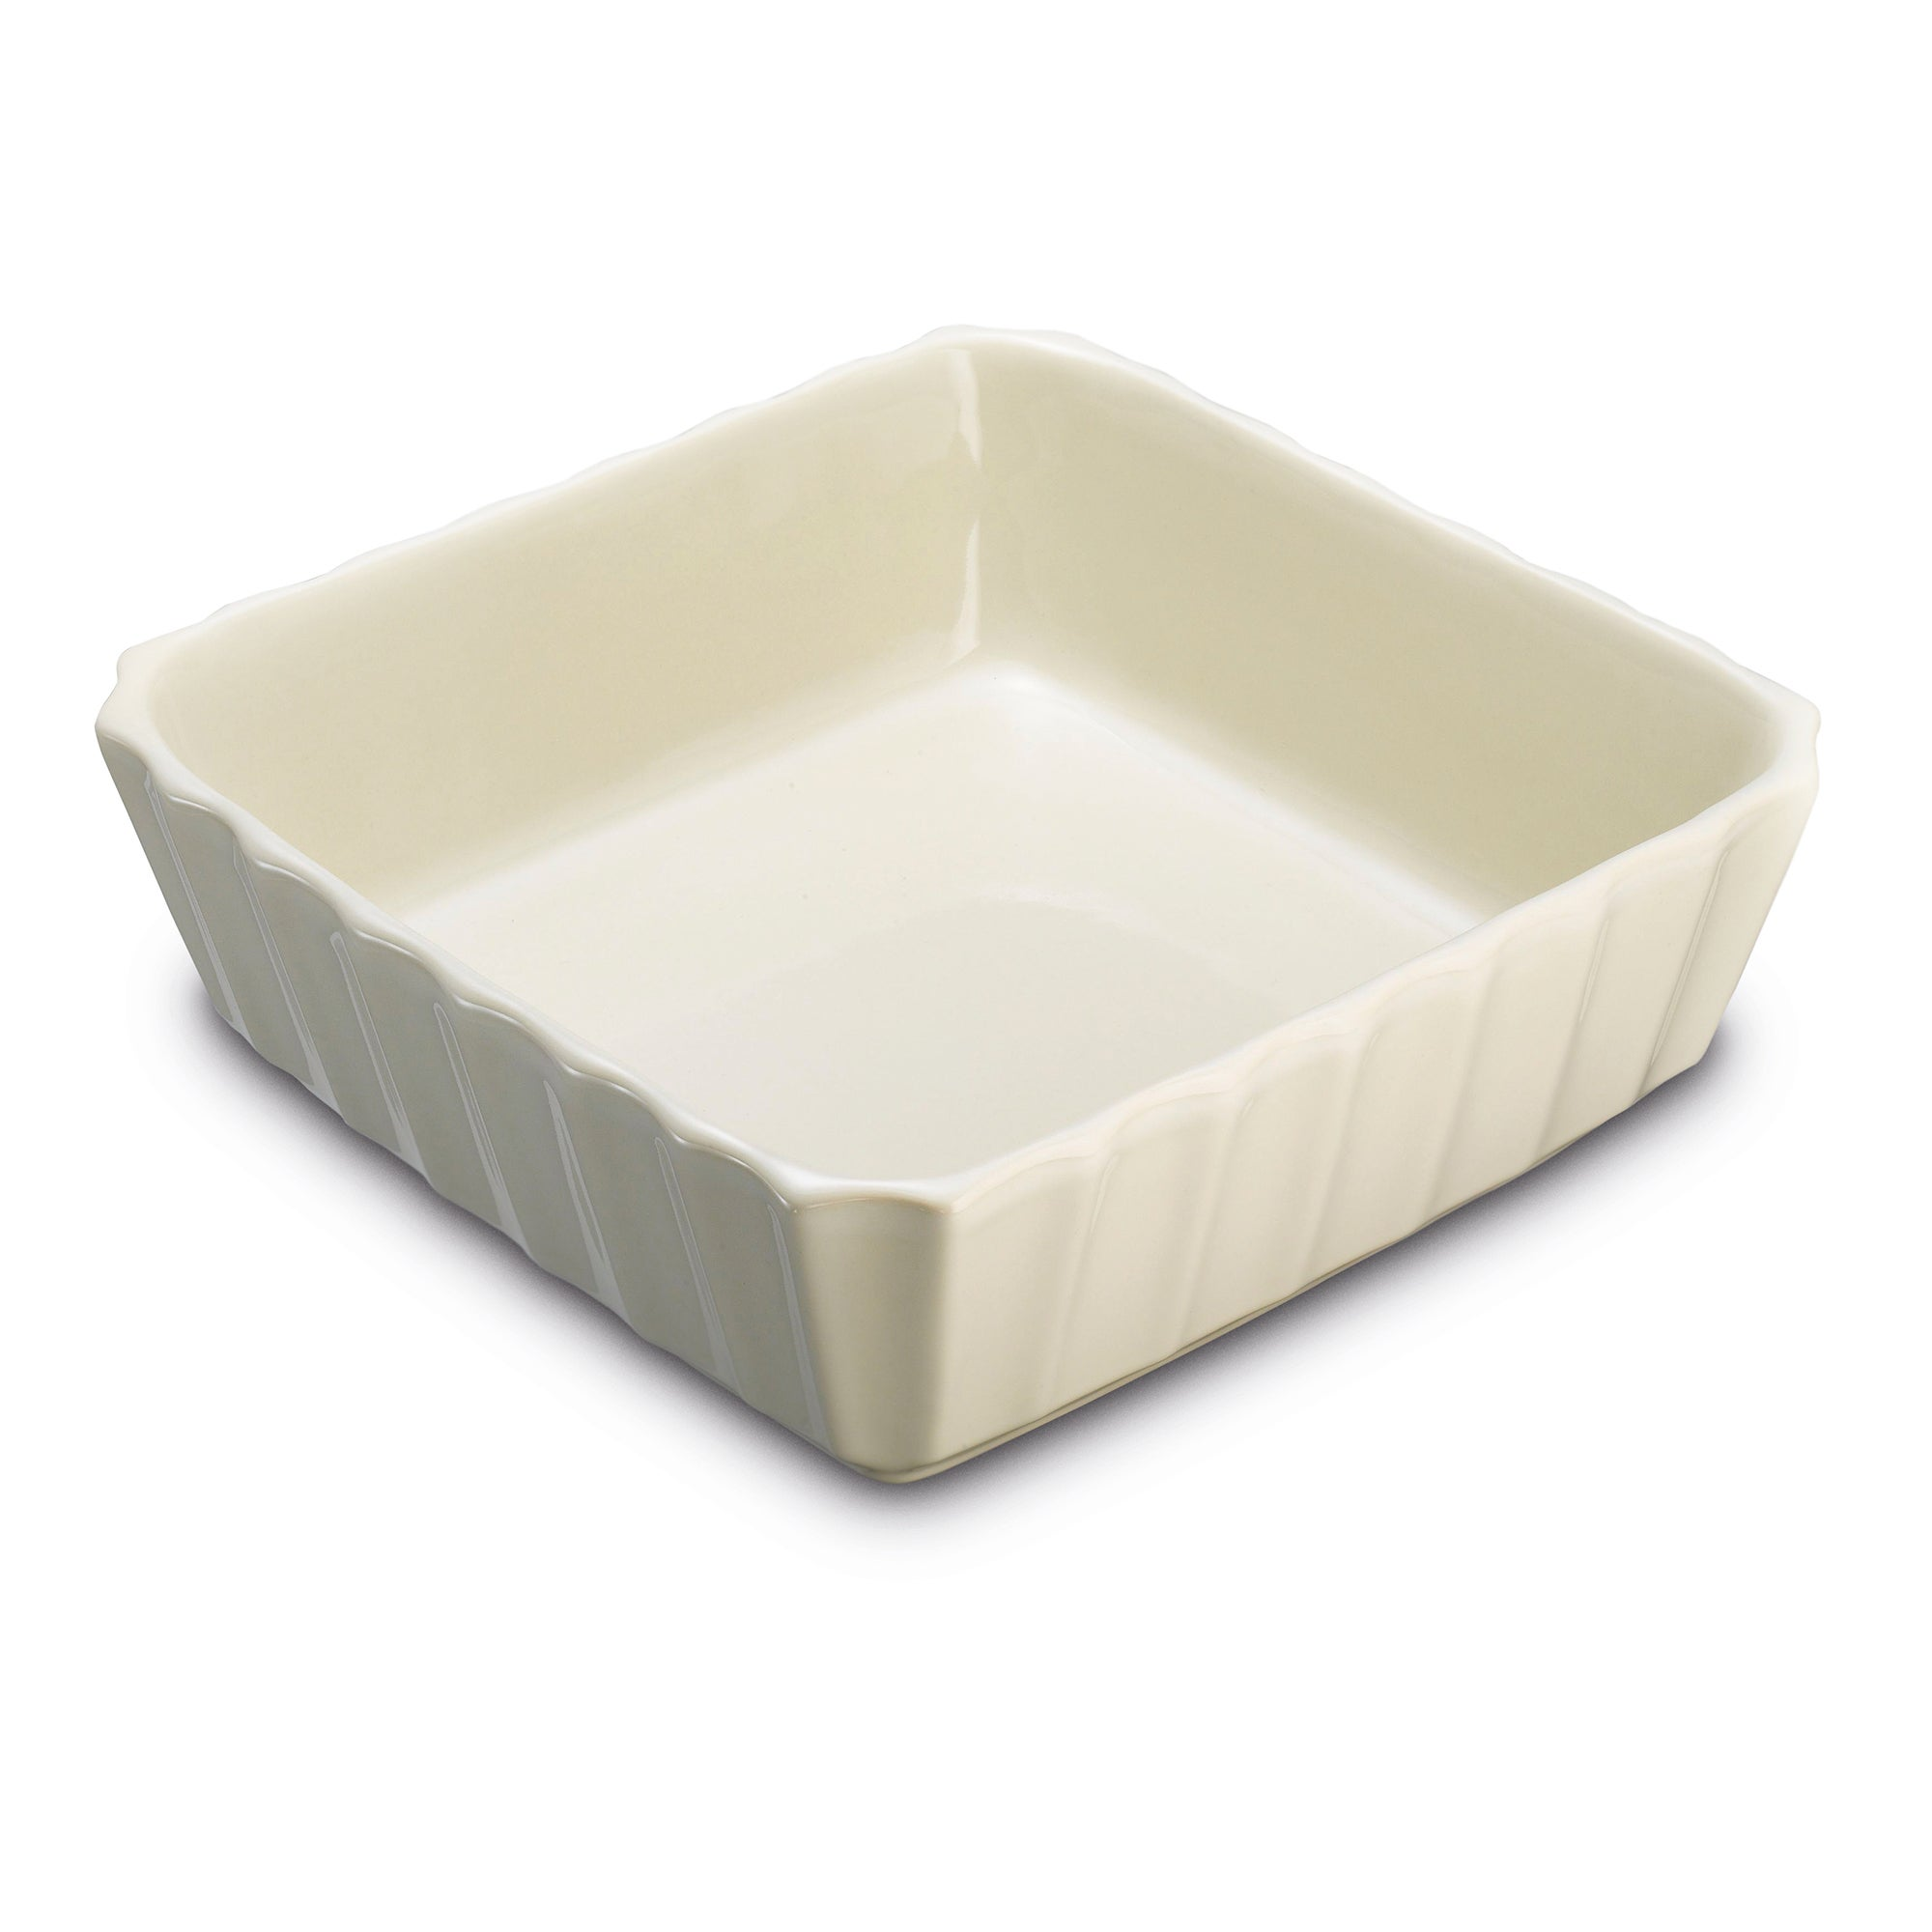 Prestige Create Almond Square Baker